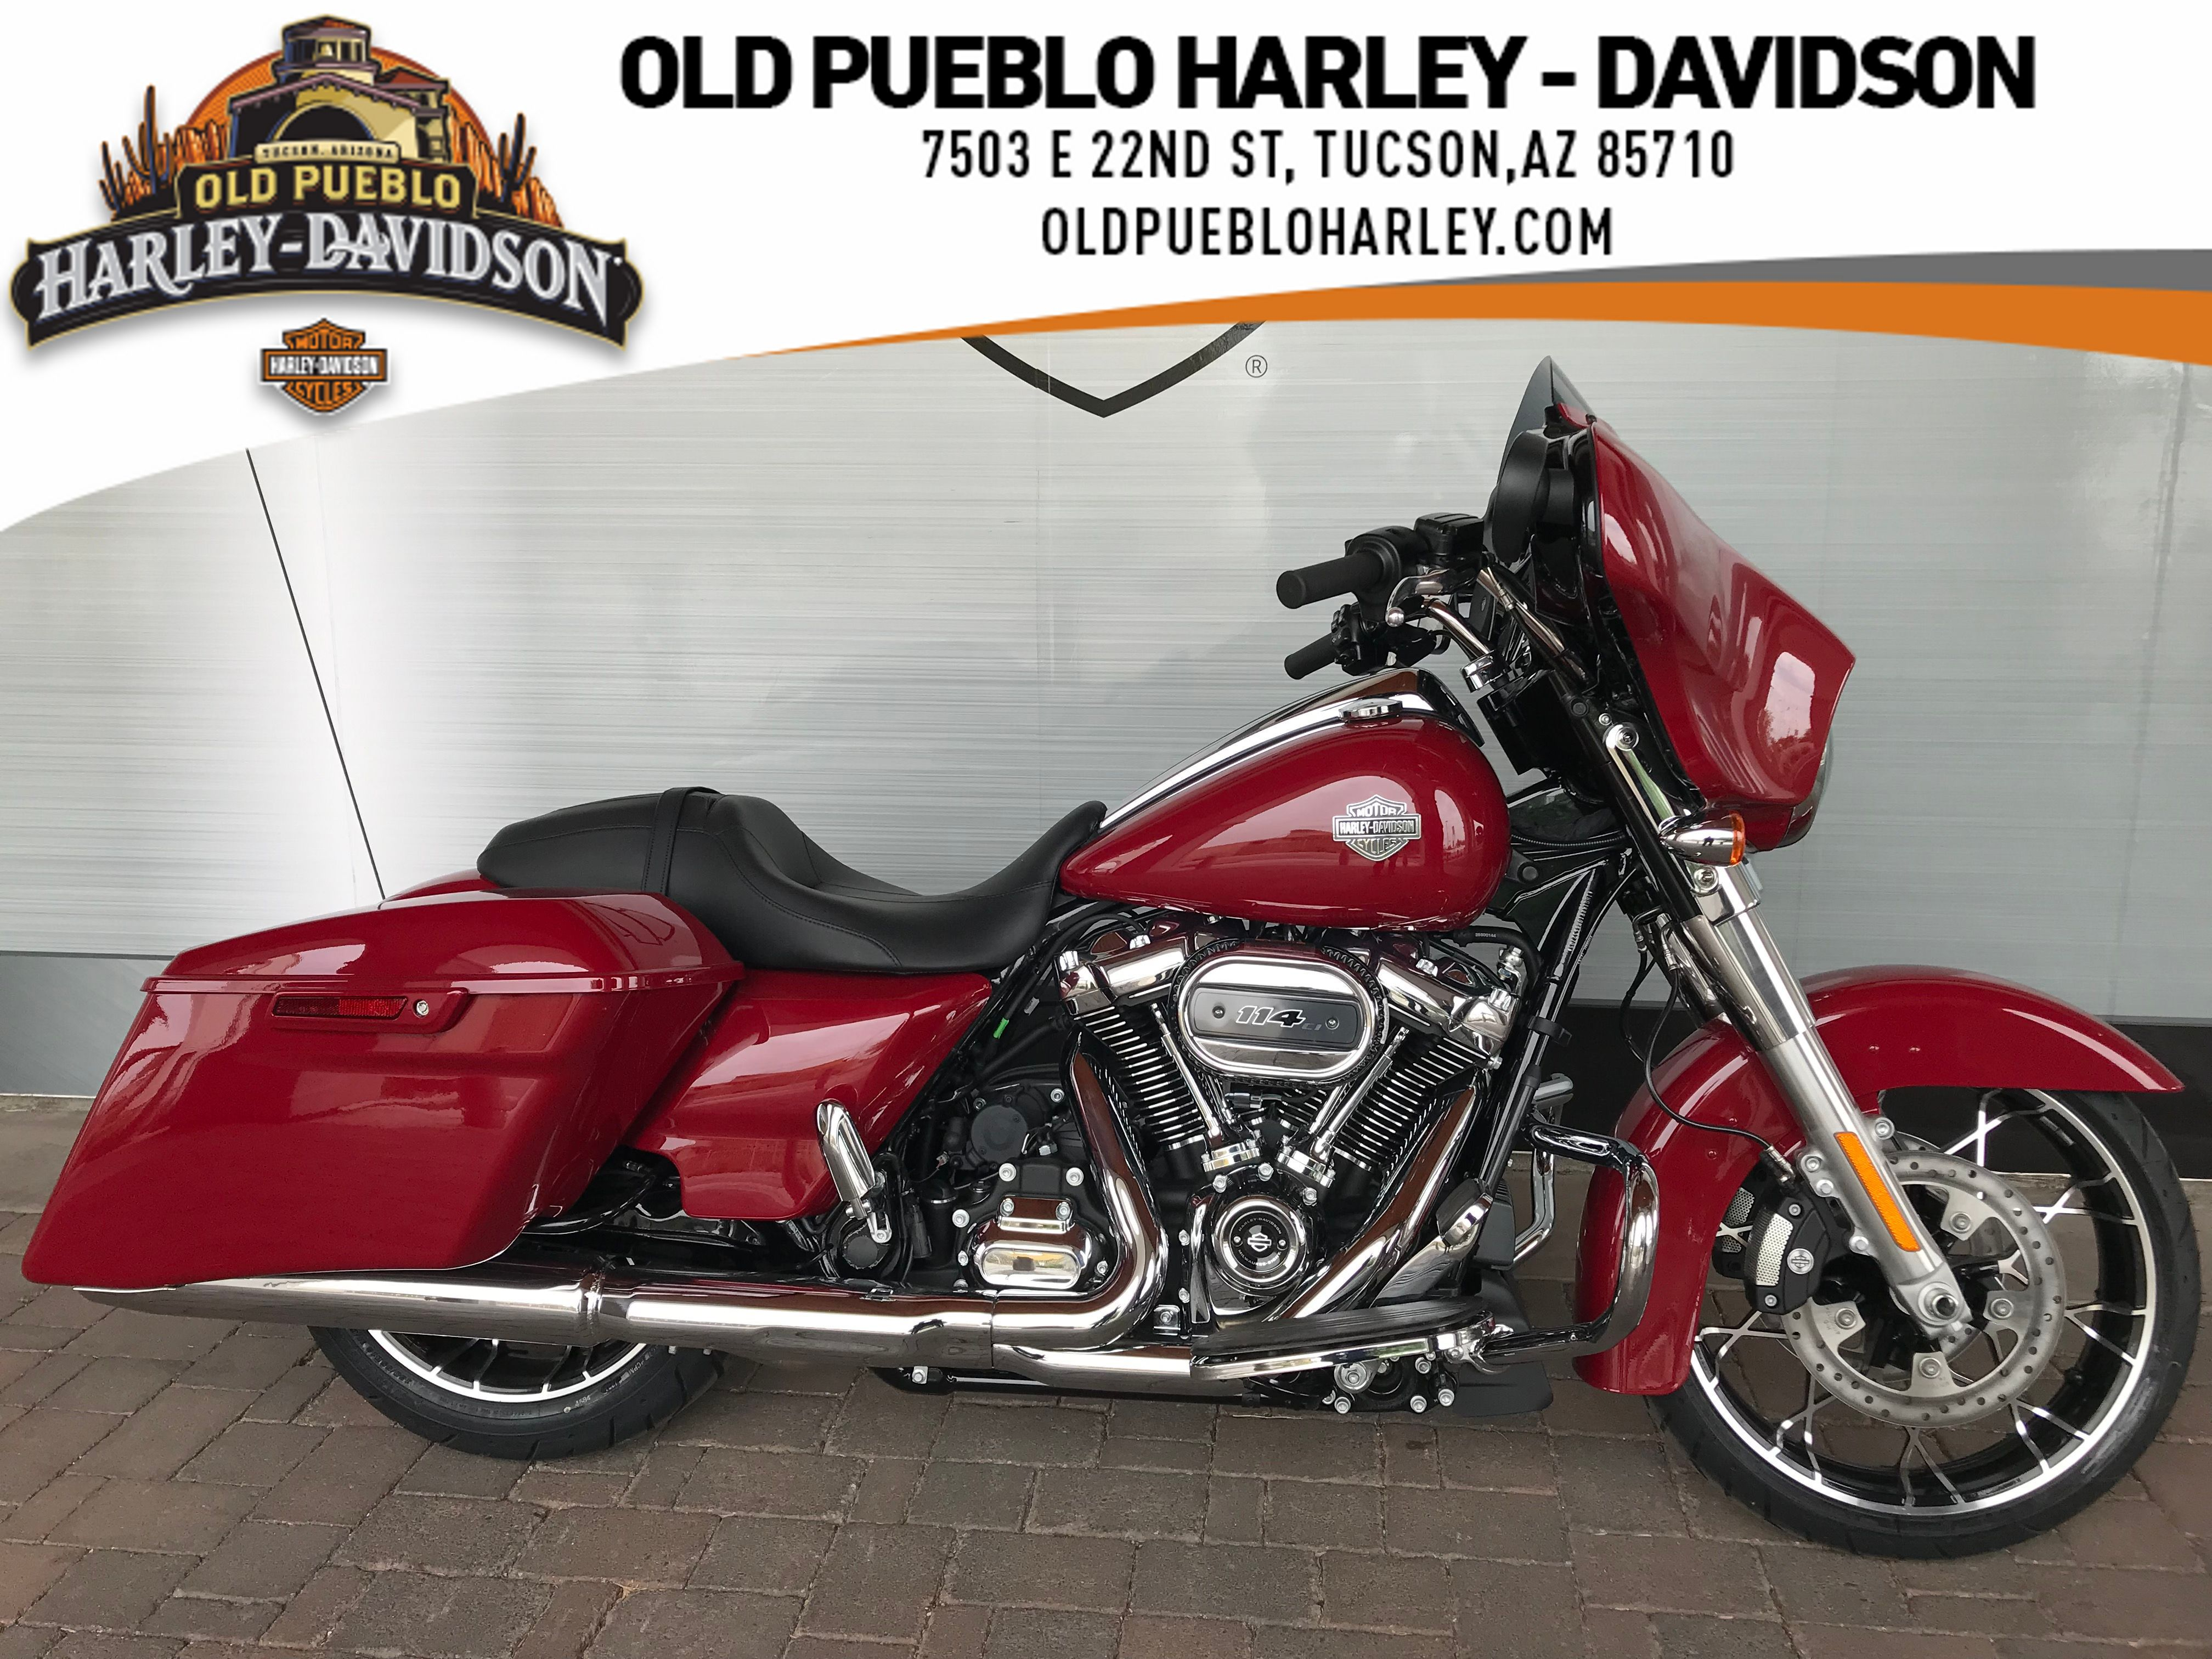 New 2021 Harley-Davidson Touring Street Glide Special FLHXS